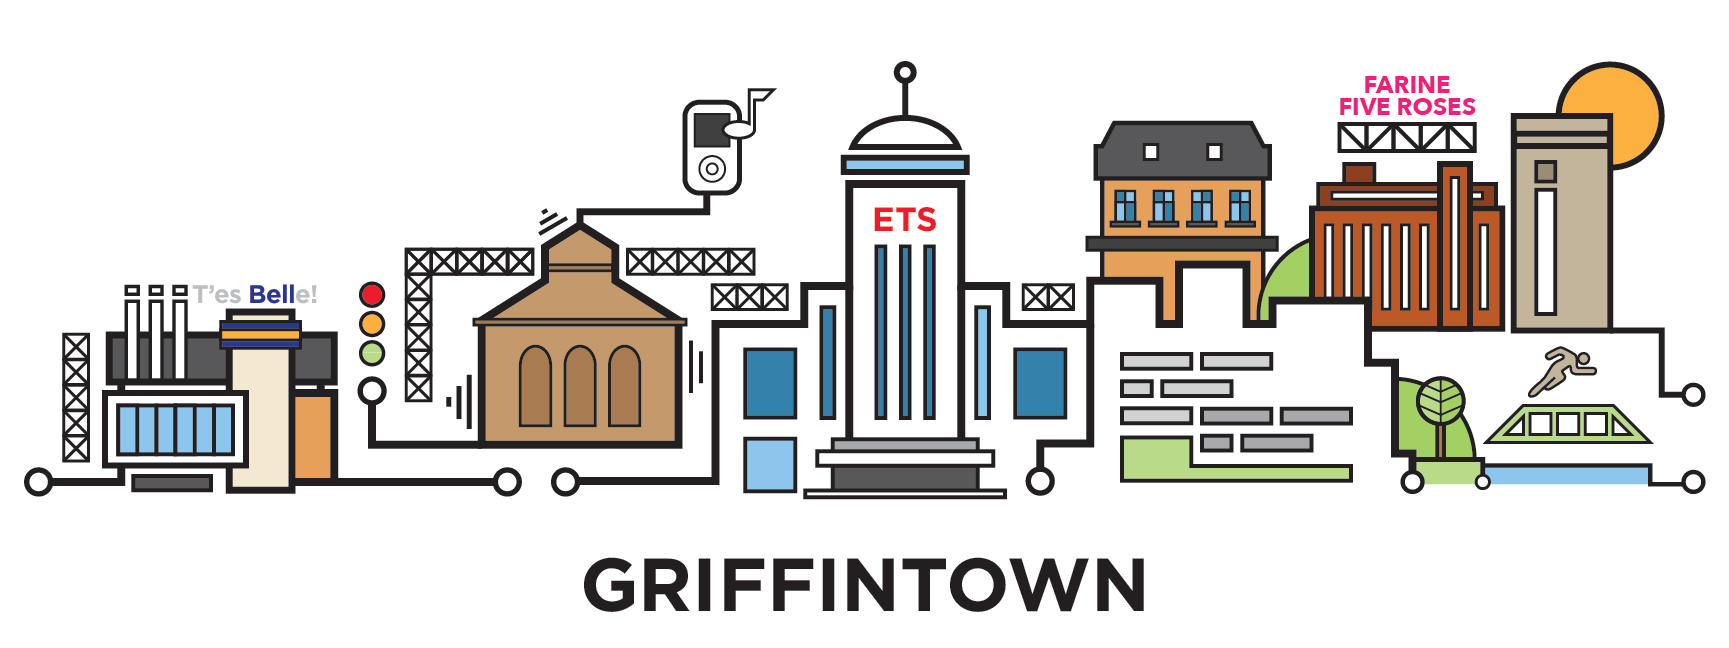 mtl-griffintown-cityline-illustration-by-loogart